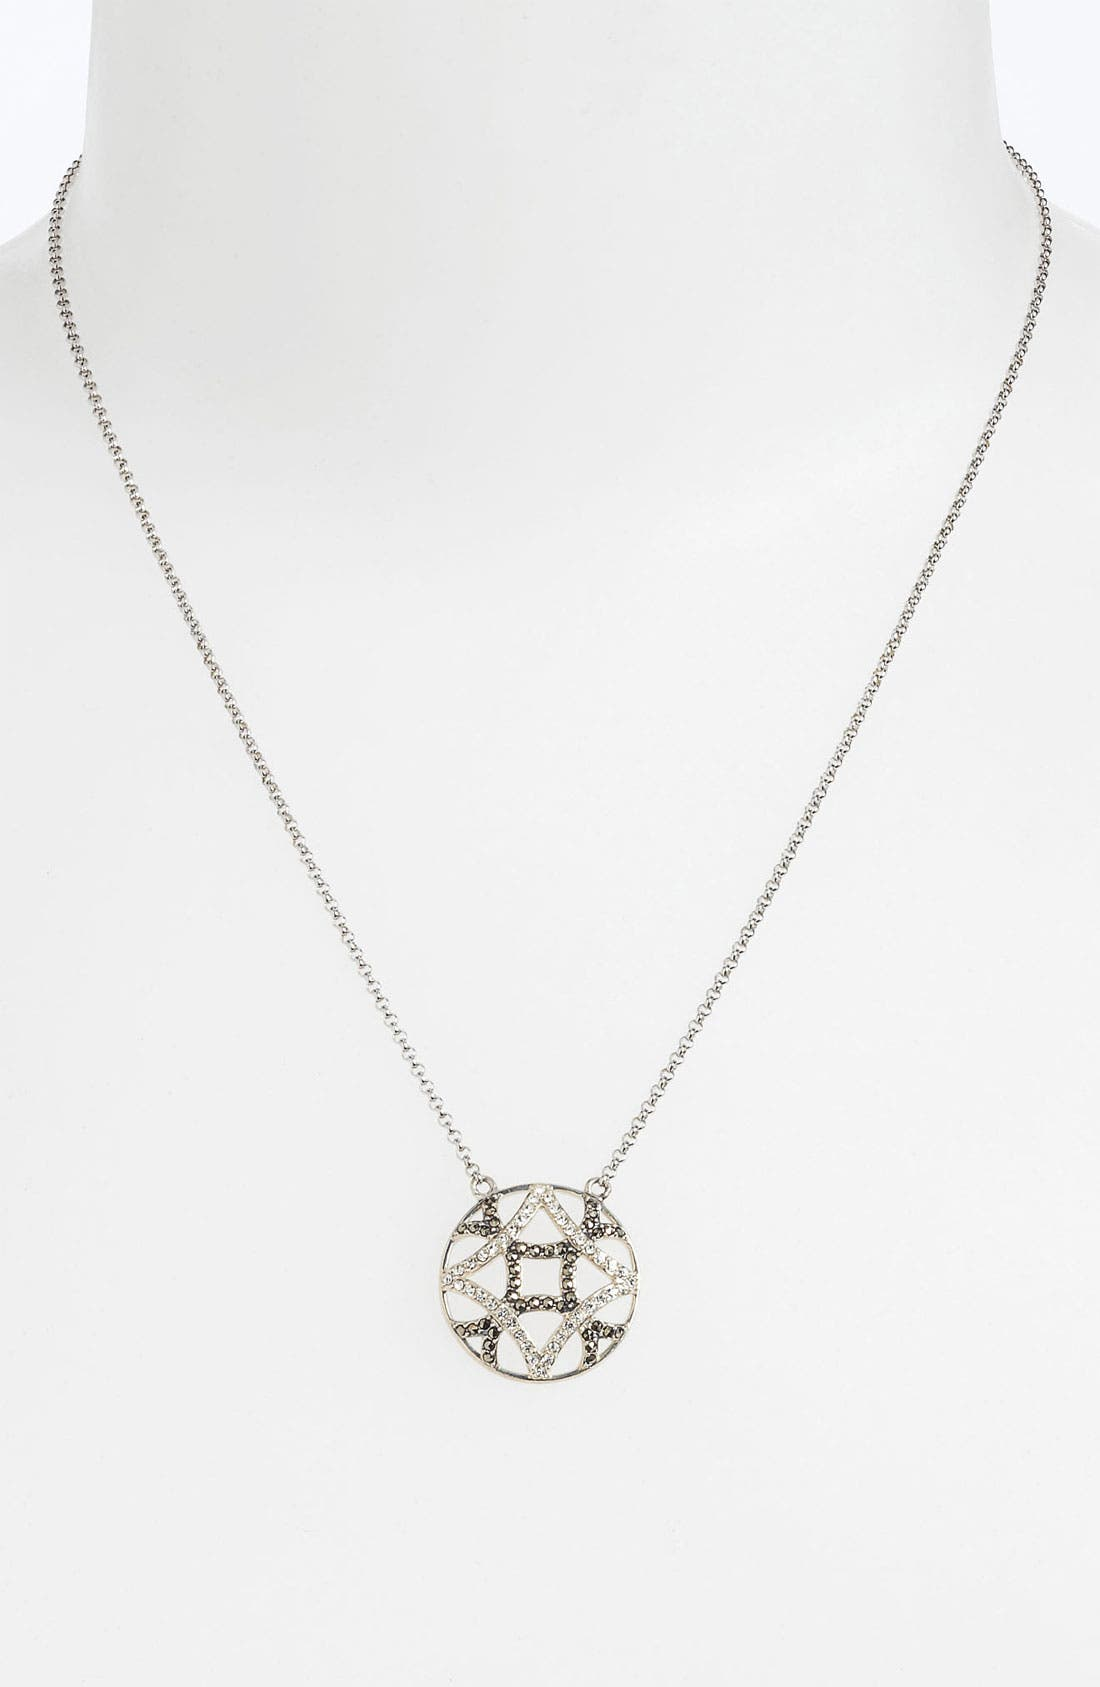 Alternate Image 1 Selected - Judith Jack 'Turq Matrix' Pendant Necklace